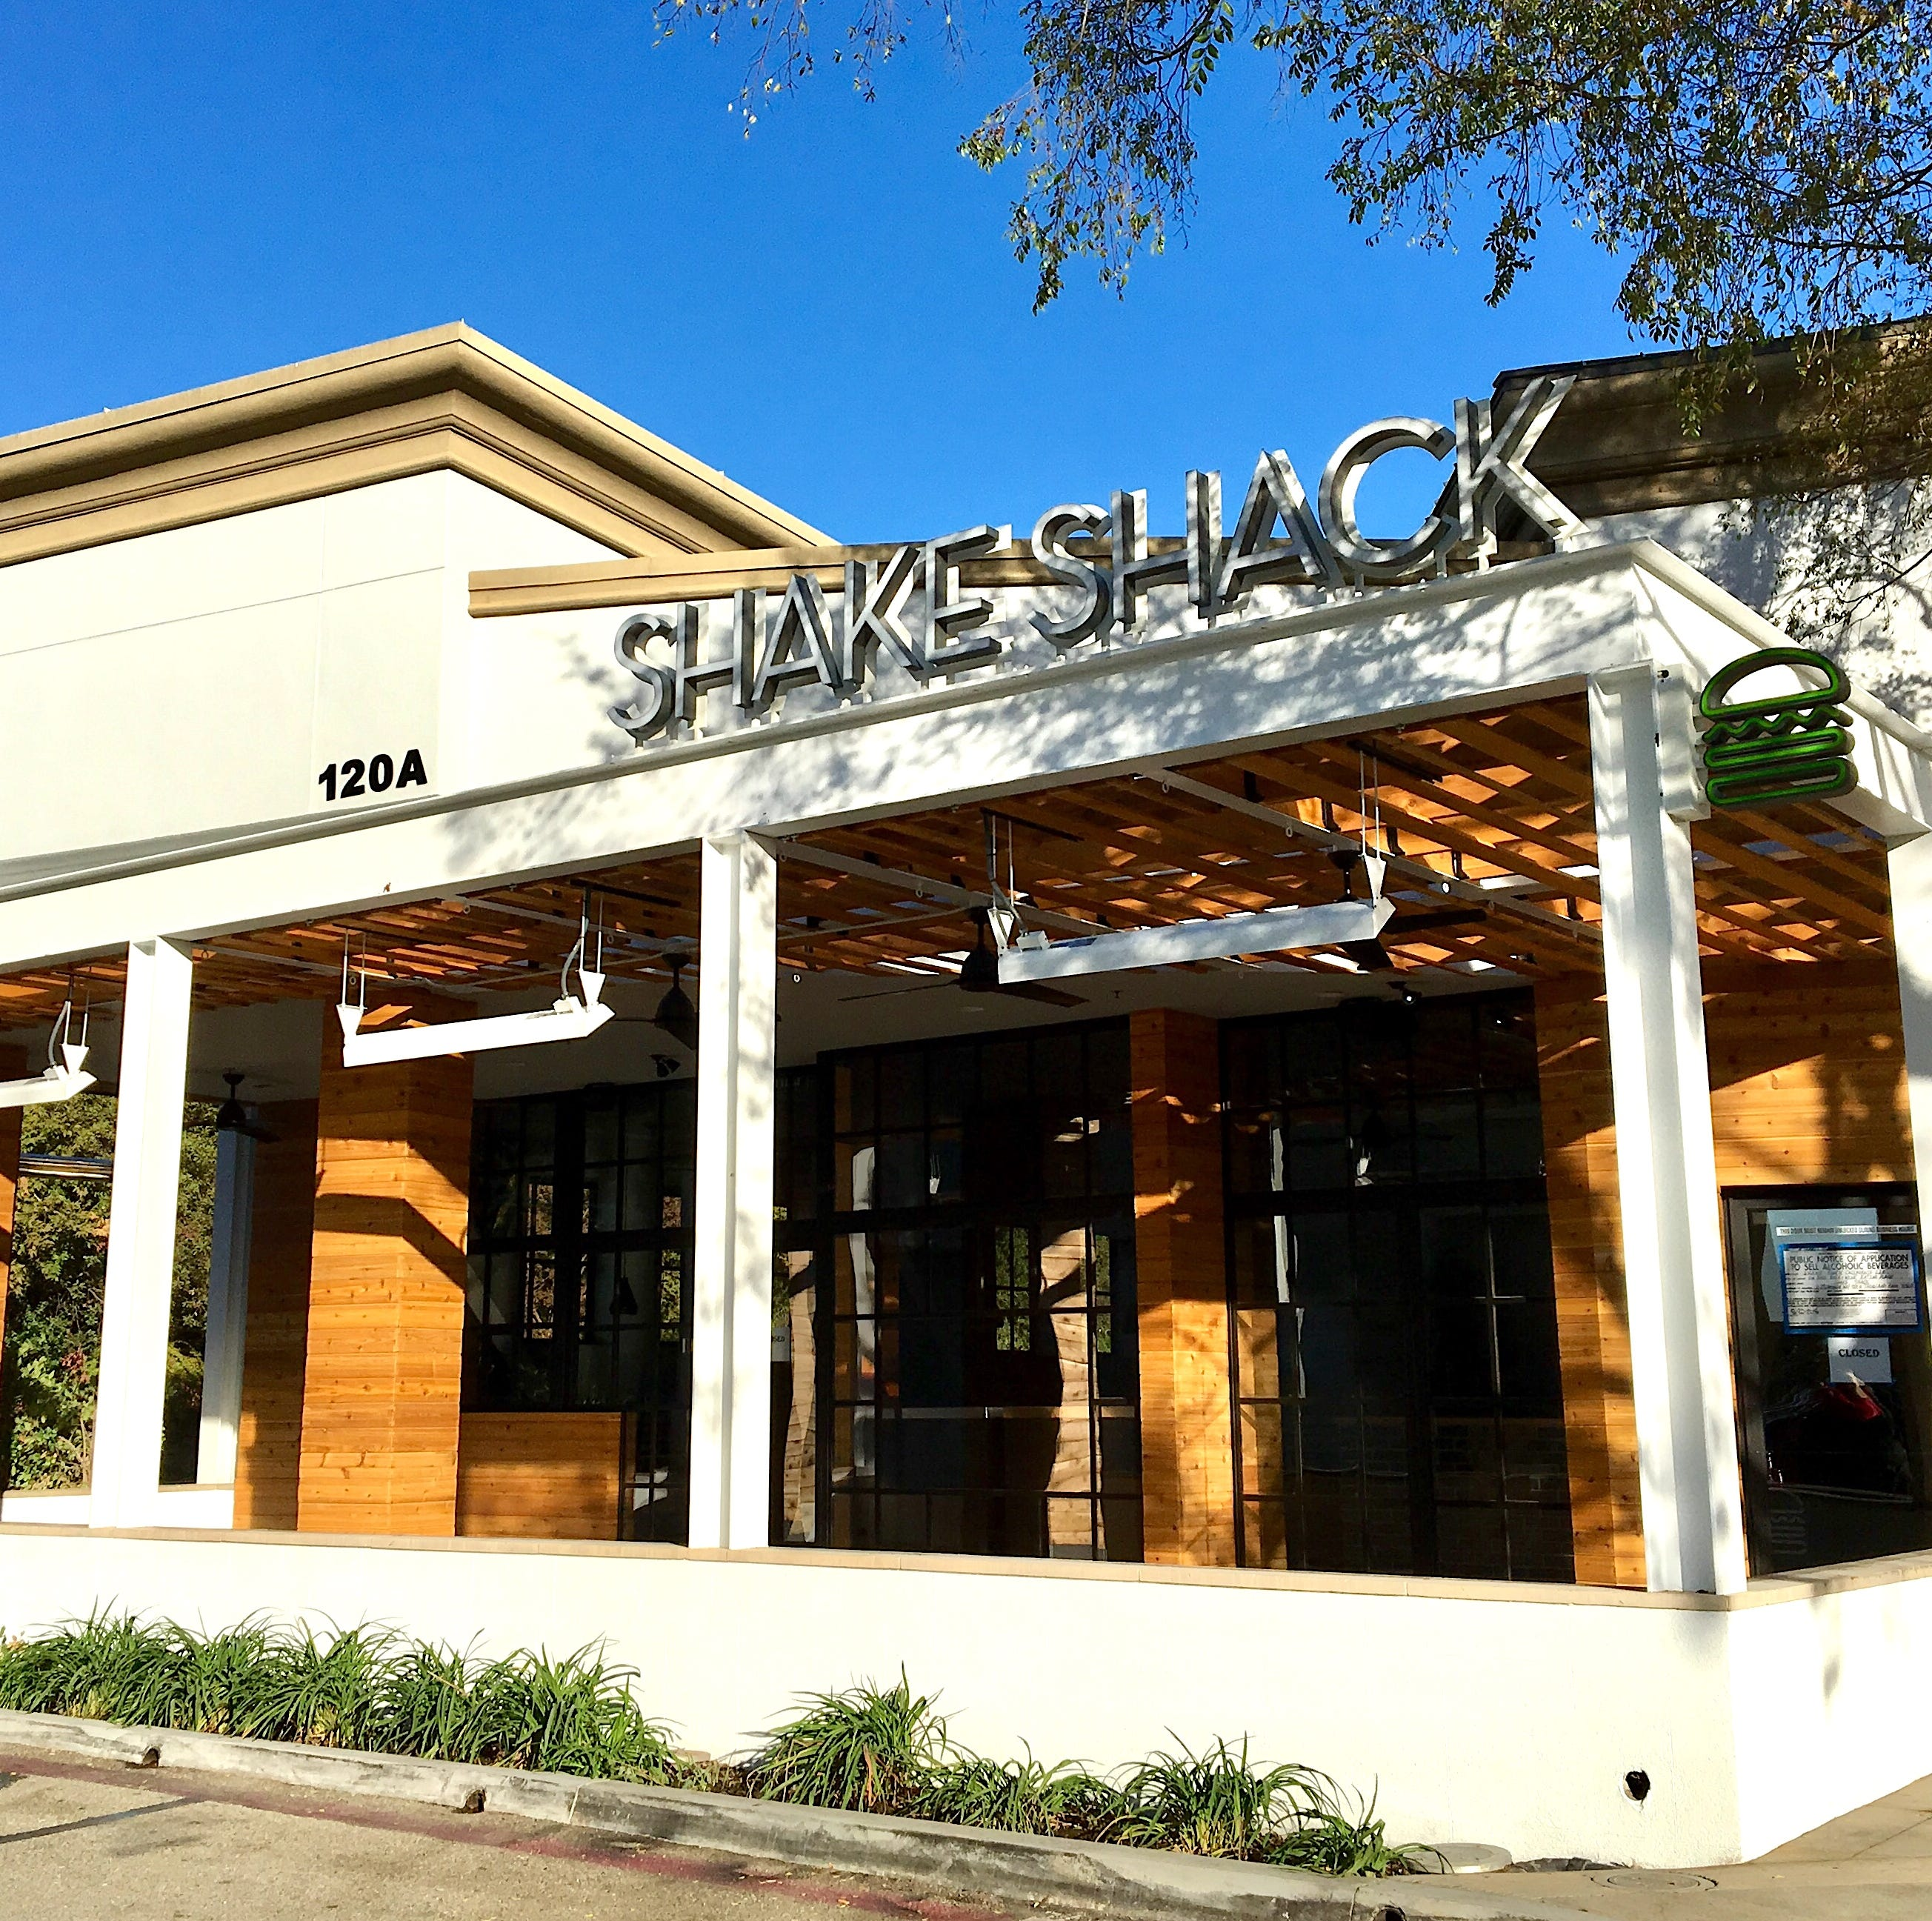 Open and shut: Shake Shack nears Ventura County debut with menu exclusives